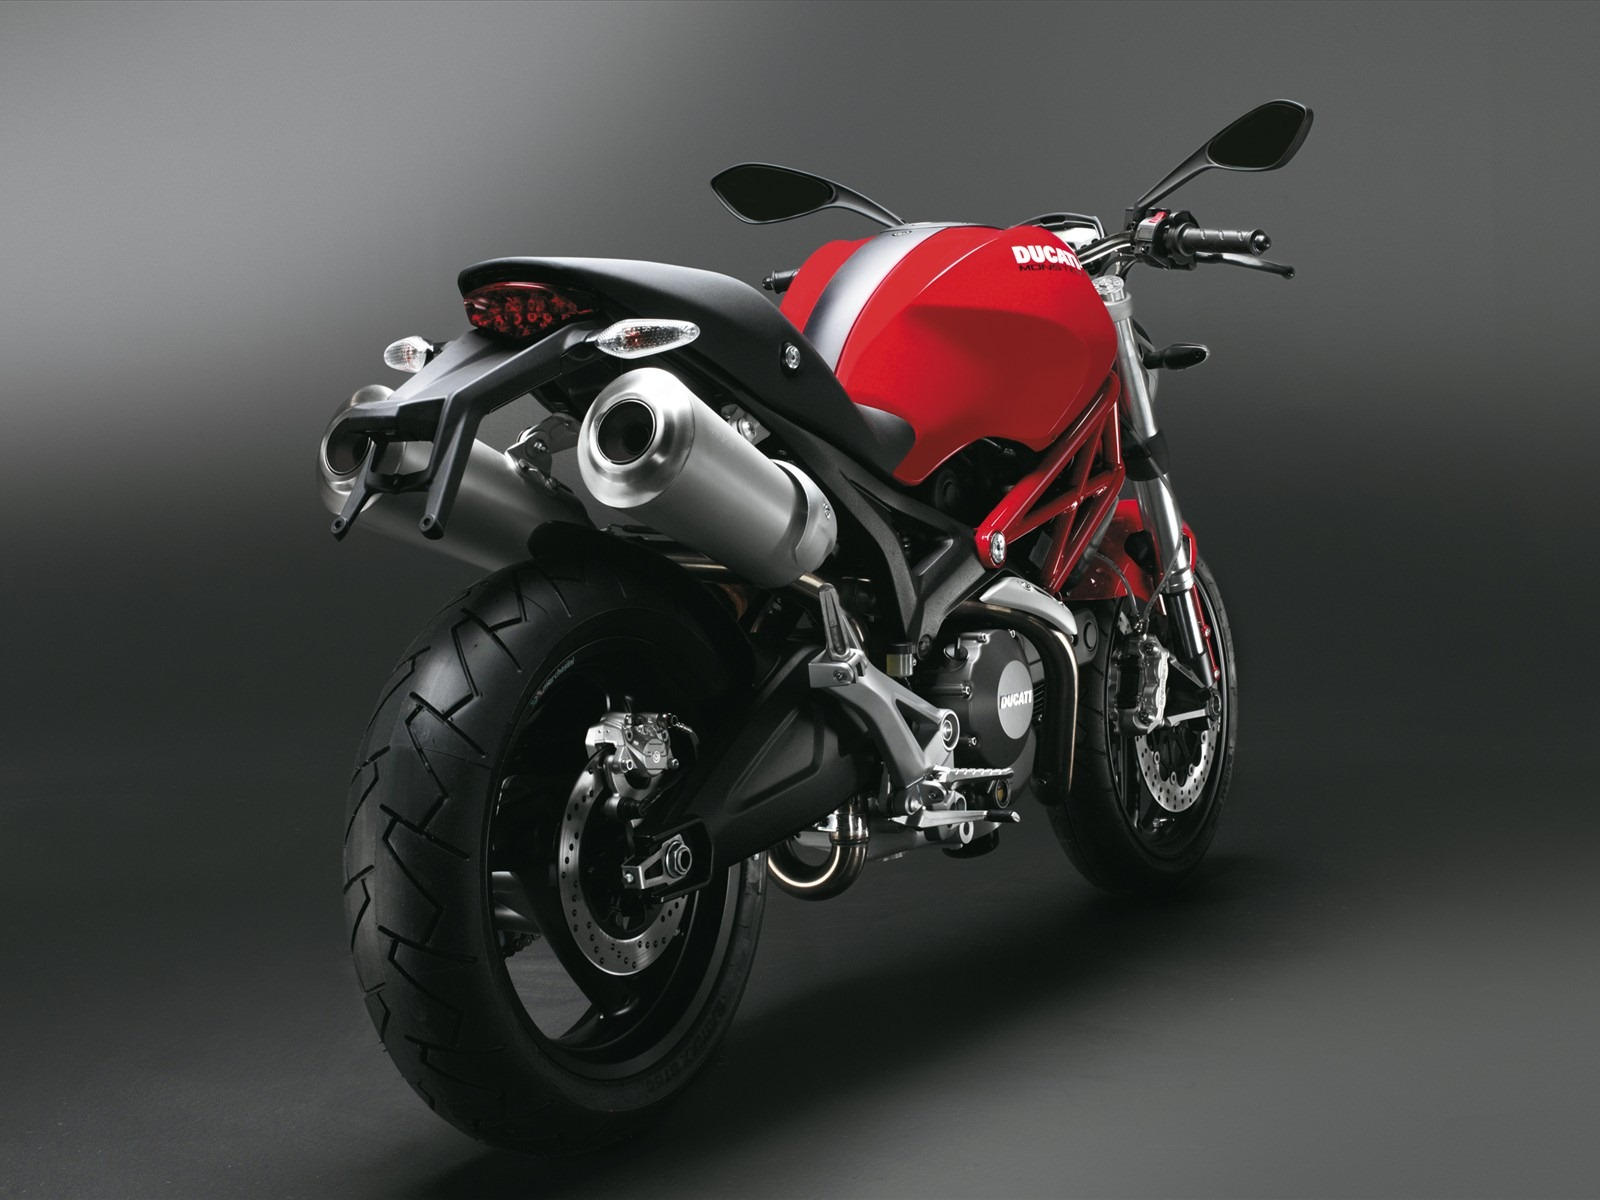 HD Wallpapers Of Ducati Bikes